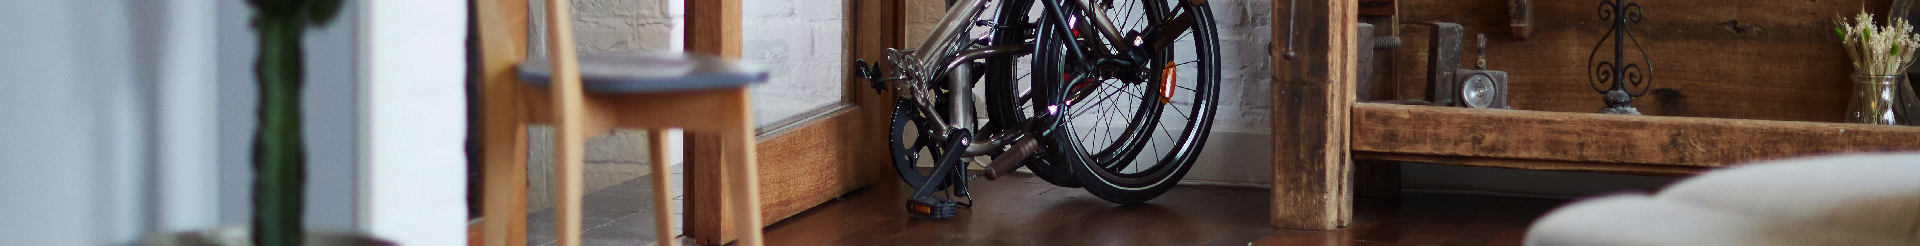 Folding Cycles